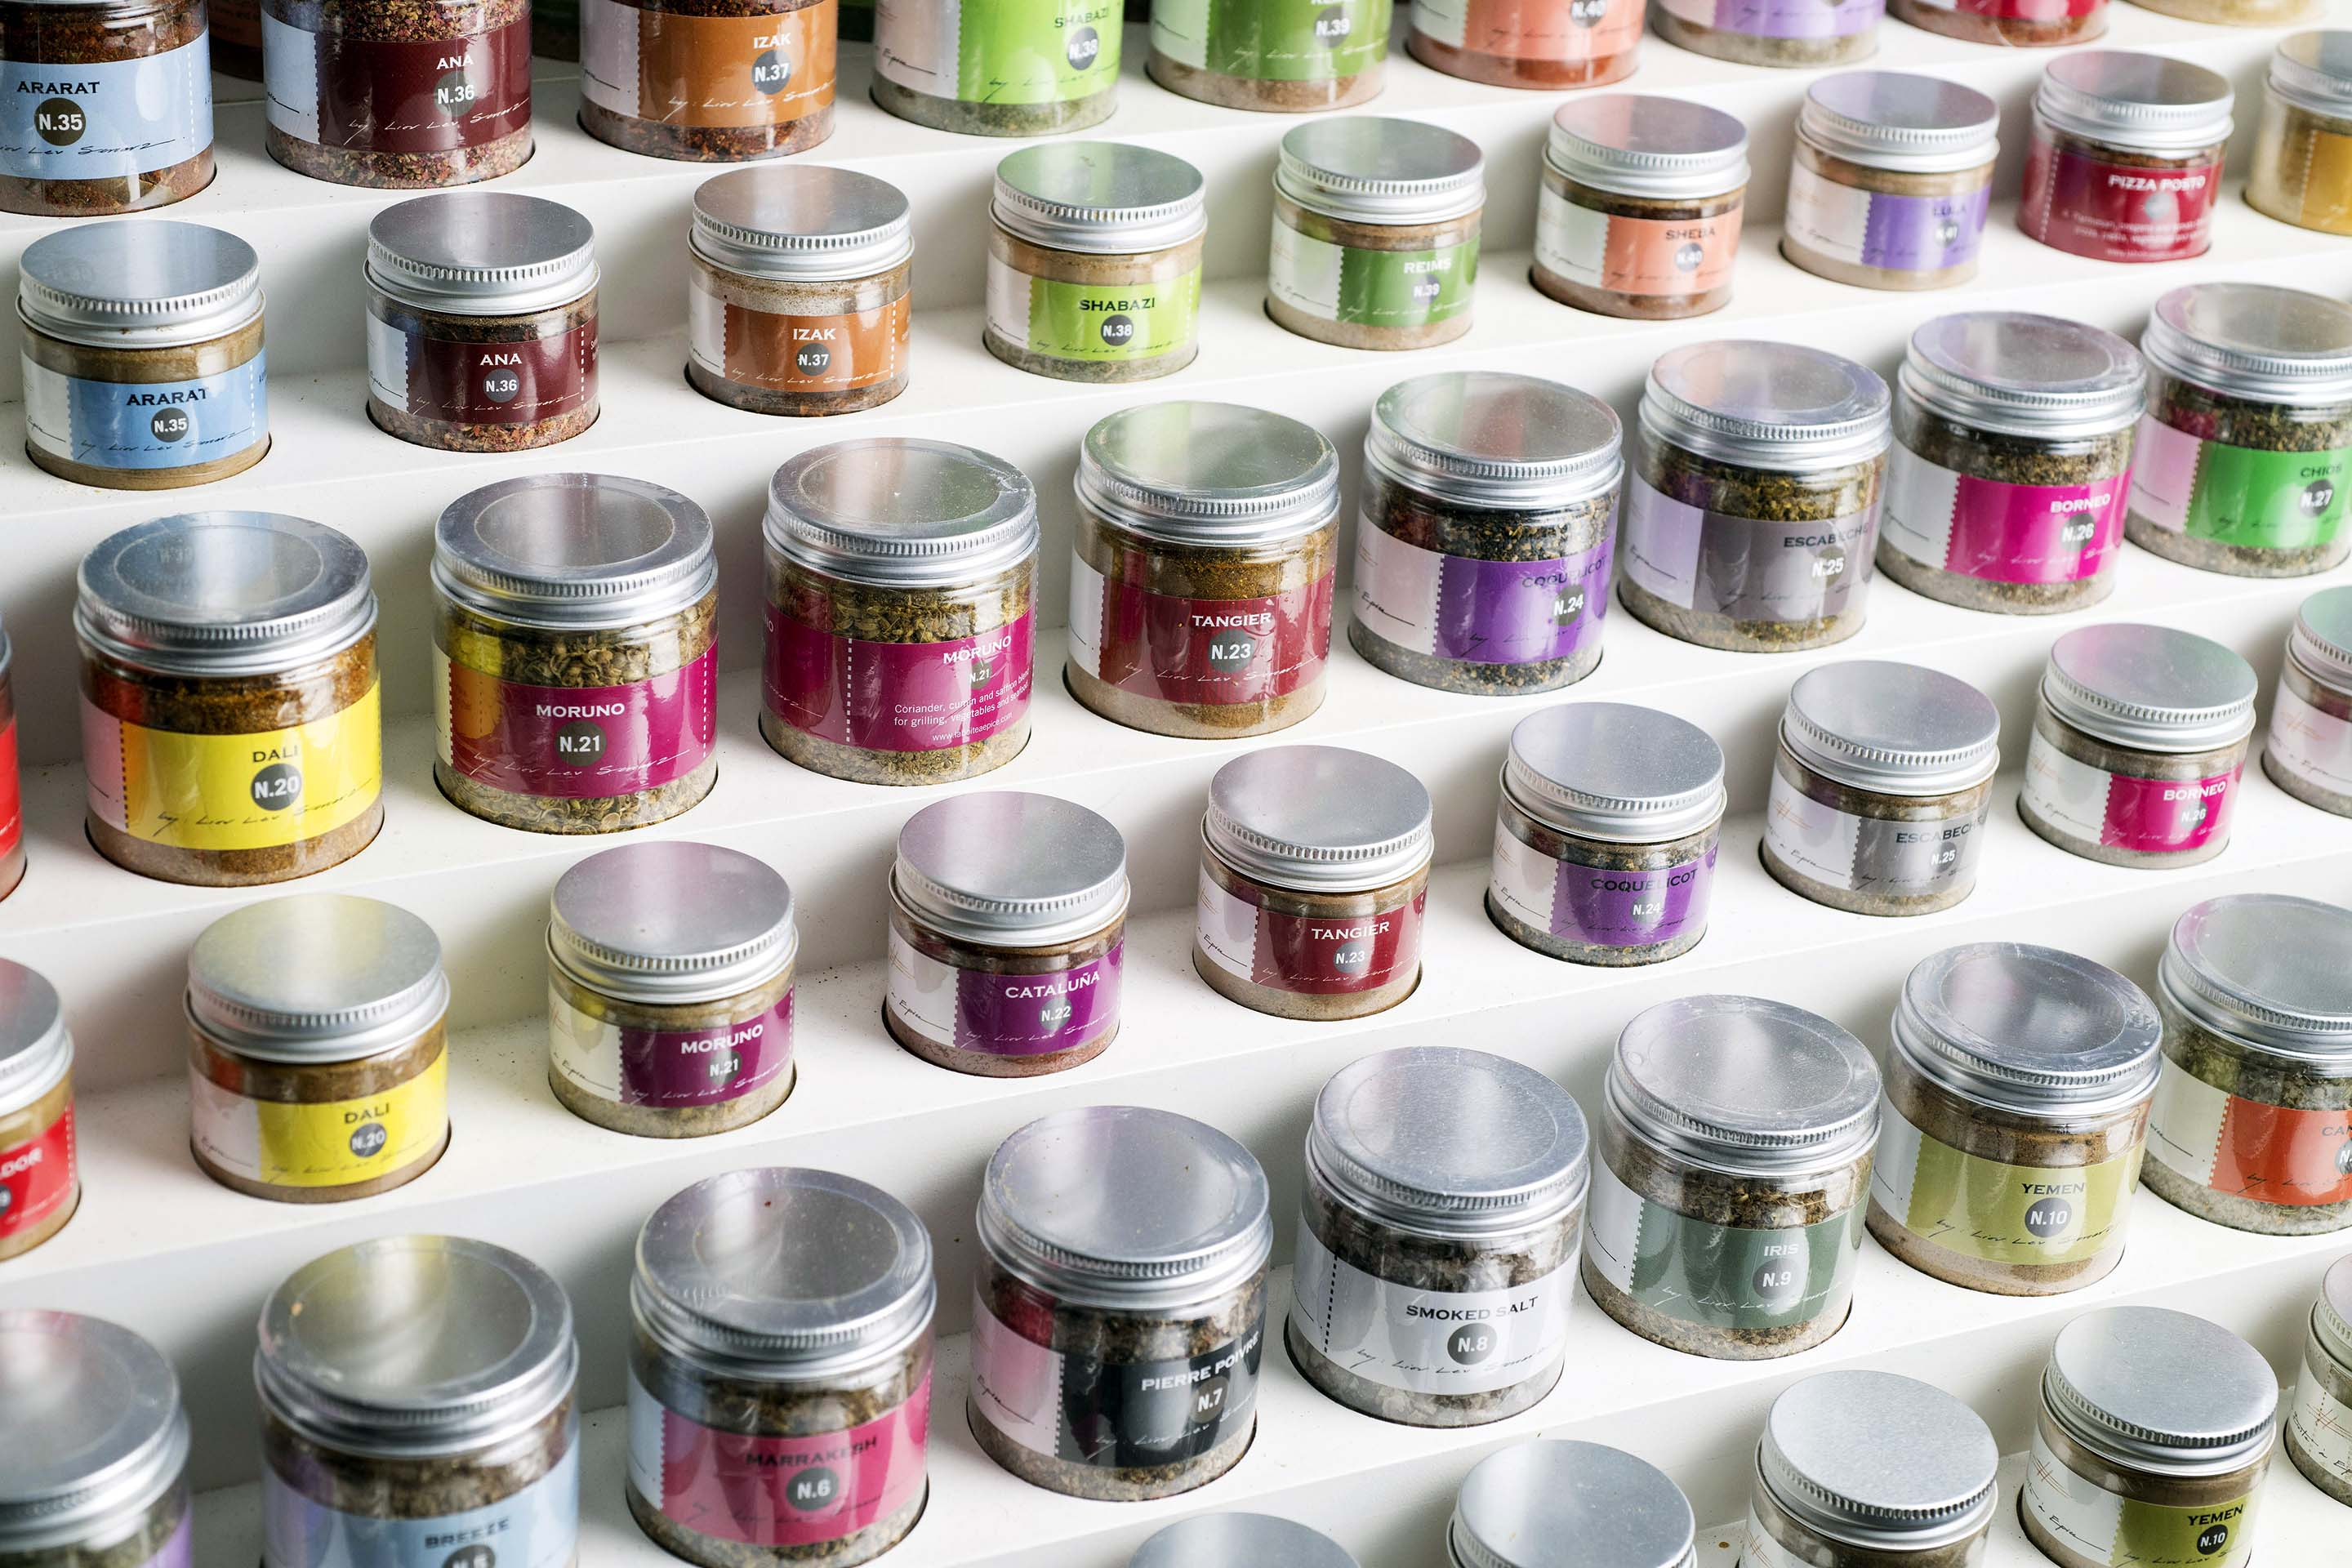 Sercarz's collection of more than 40 spice blends are lined up in neat rows in his shop.